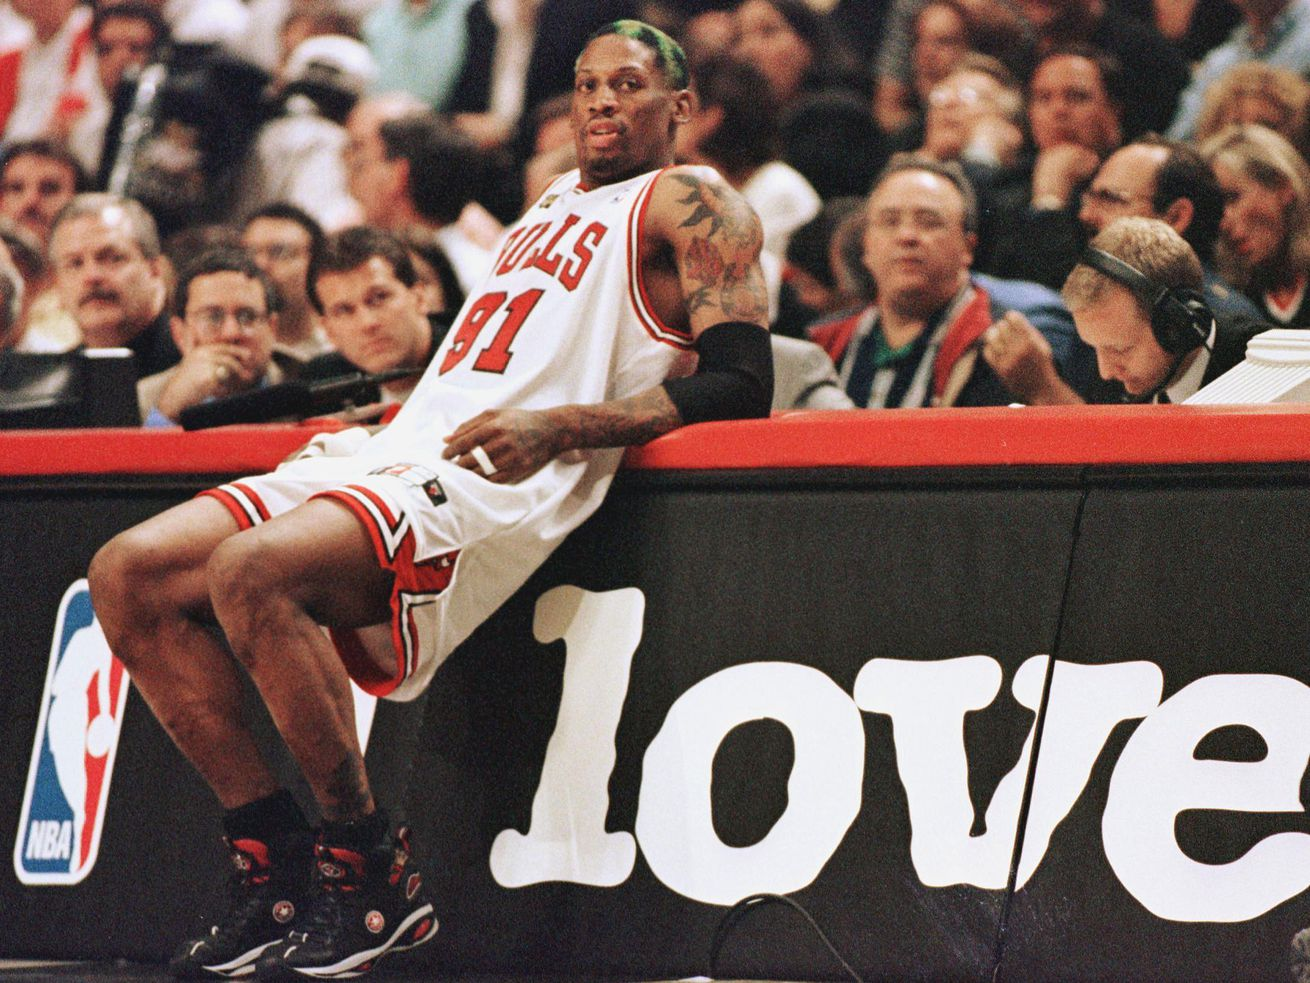 BKN-JAZZ-BULLS-RODMAN-SIGN